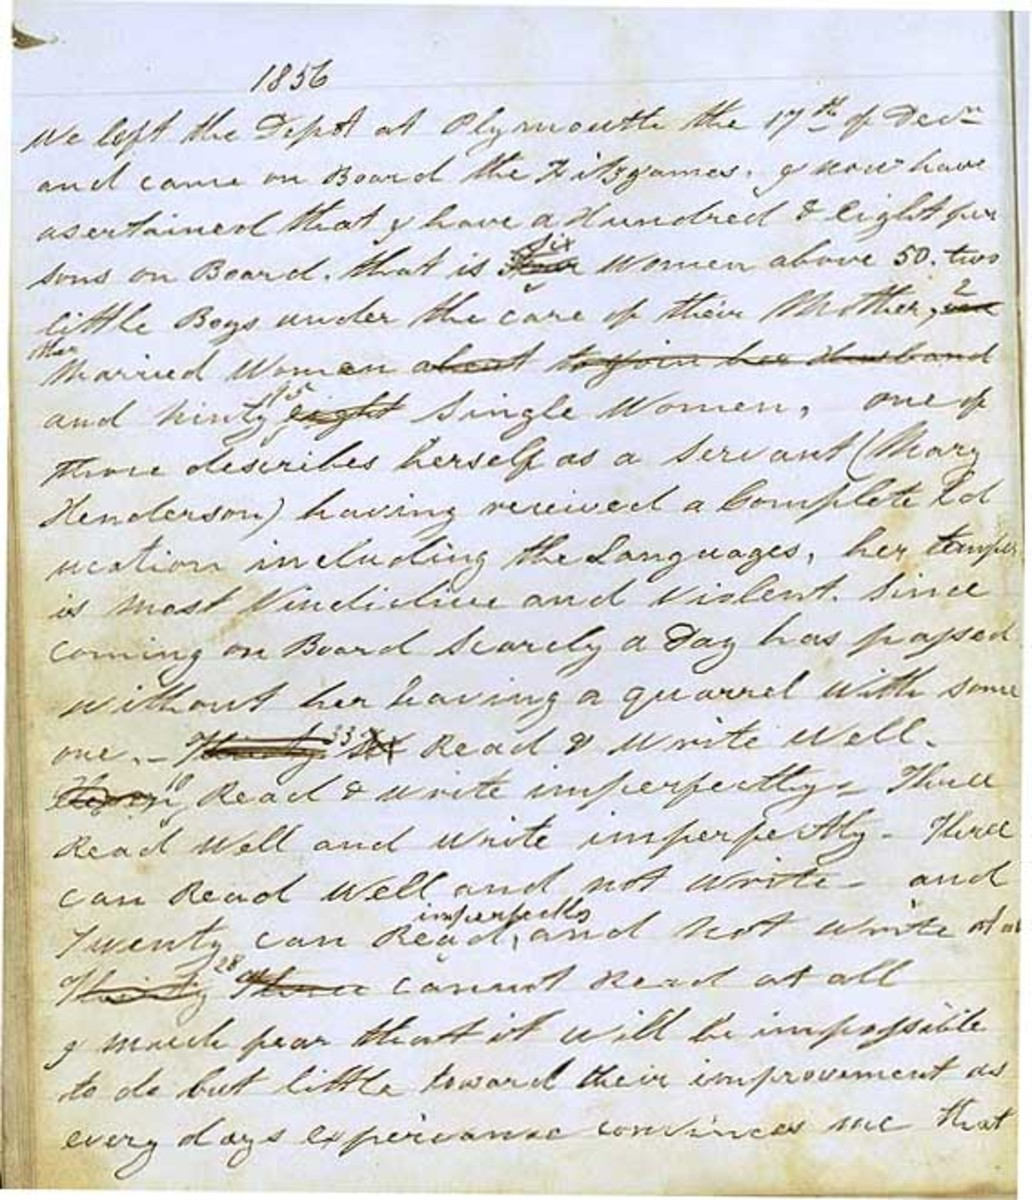 Matron's diary of the voyage of the 'Fitzjames', 1856-57   Matron Susan Austen was chaperone to 98 single females on the 'Fitzjames' which arrived in Sydney on 1 April 1857.